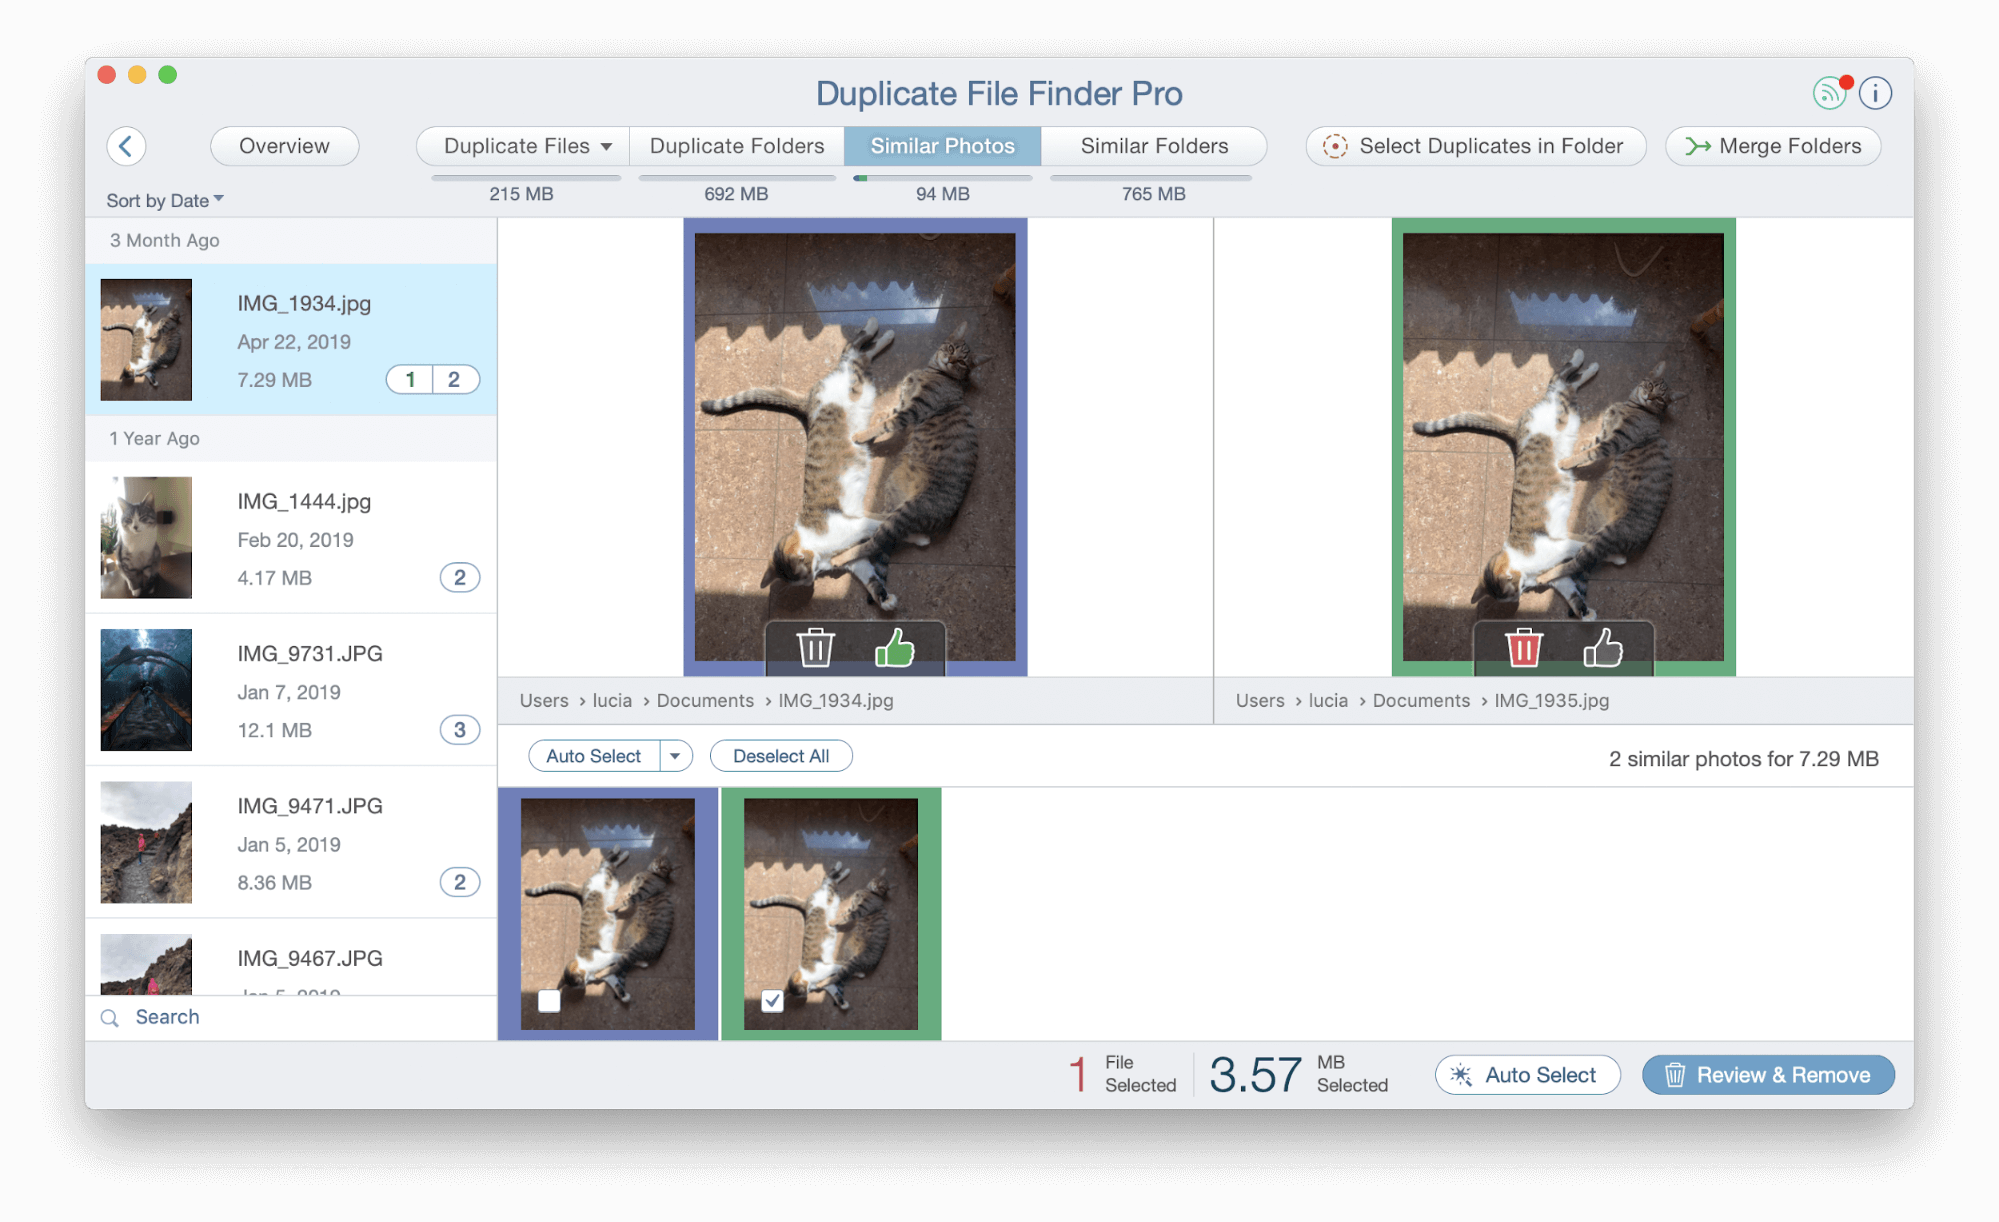 Duplicate File Finder -Similar photos tab